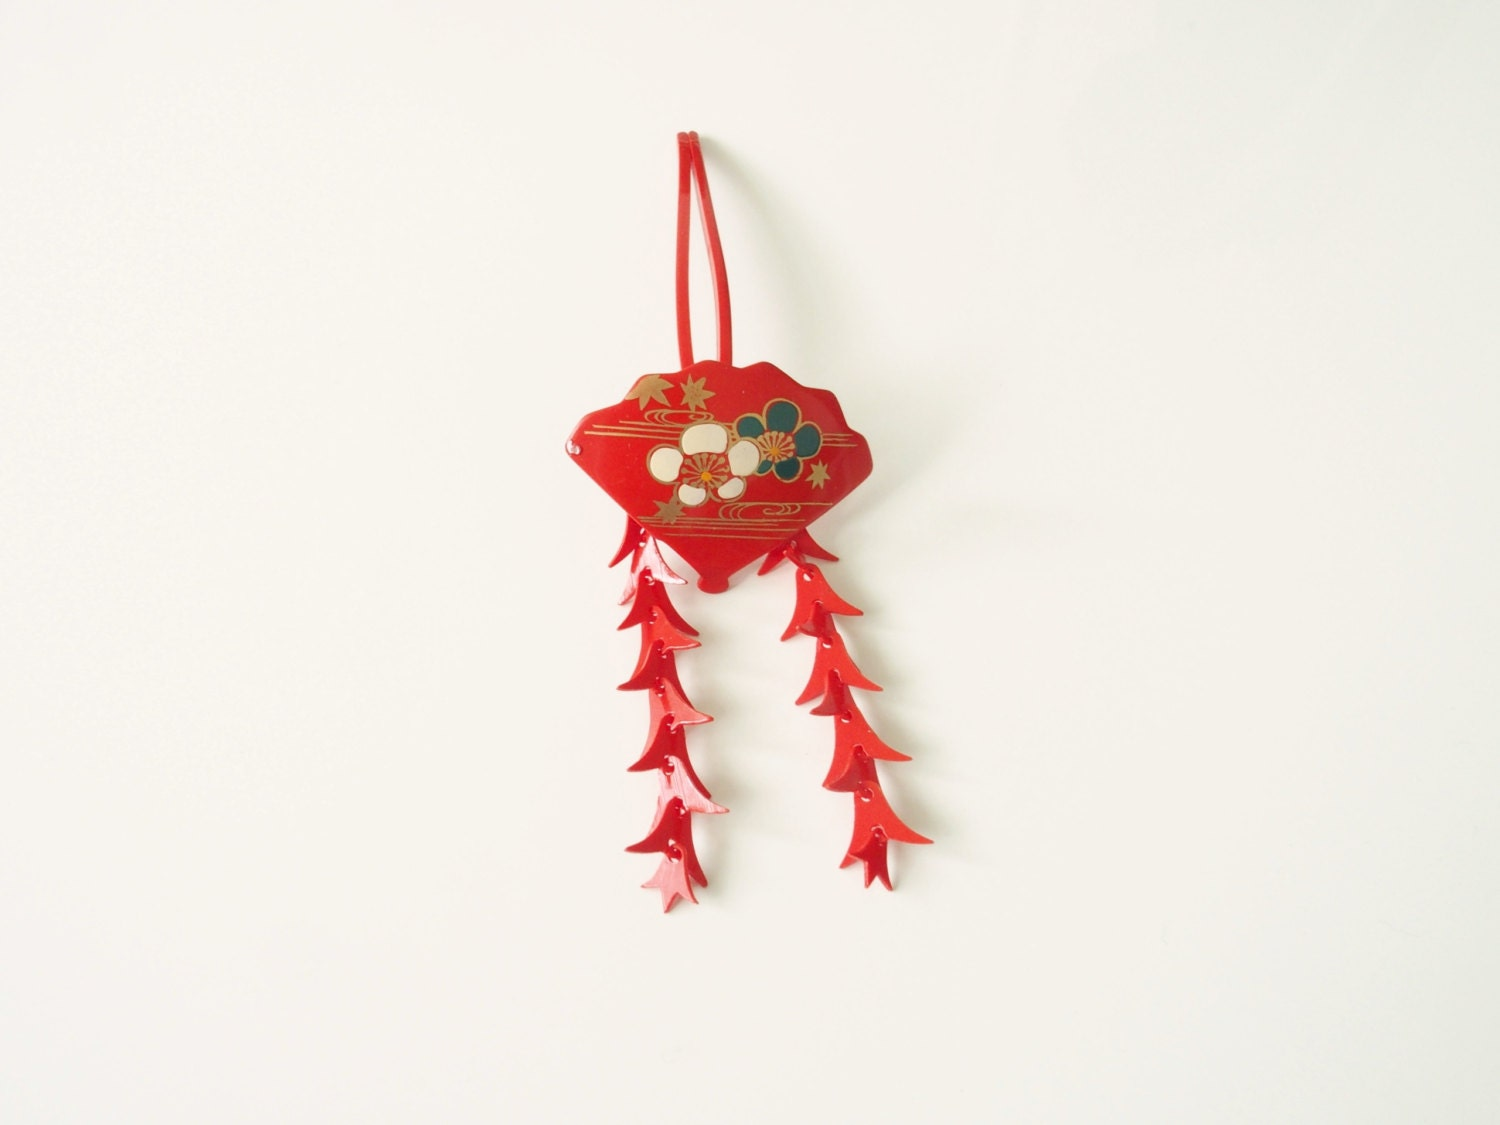 Vintage Kanzashi Red Hair Ornament Traditional Japanese Design